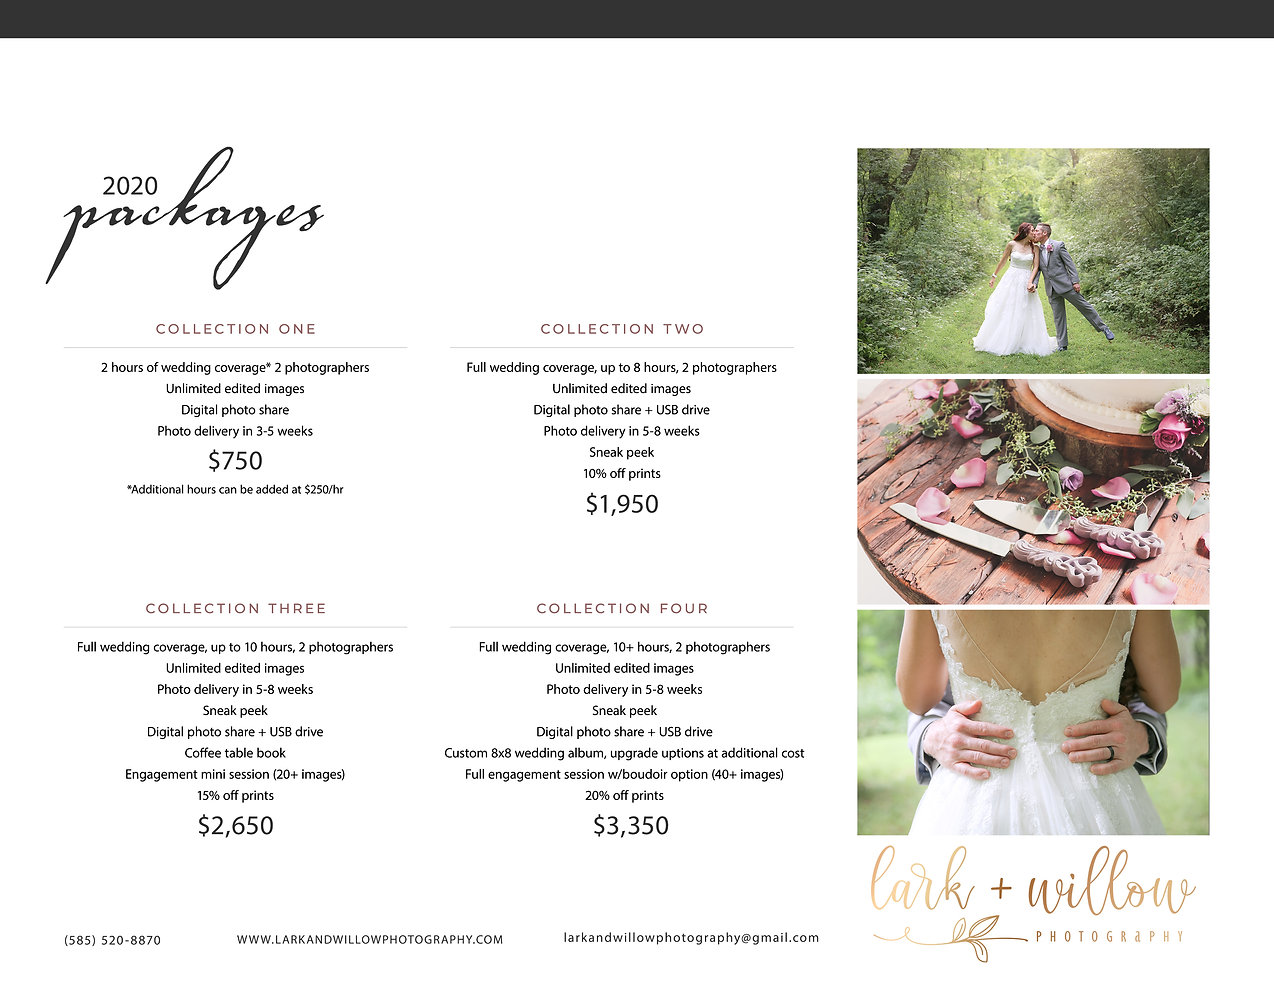 2020 lark + willow weddings - packages a